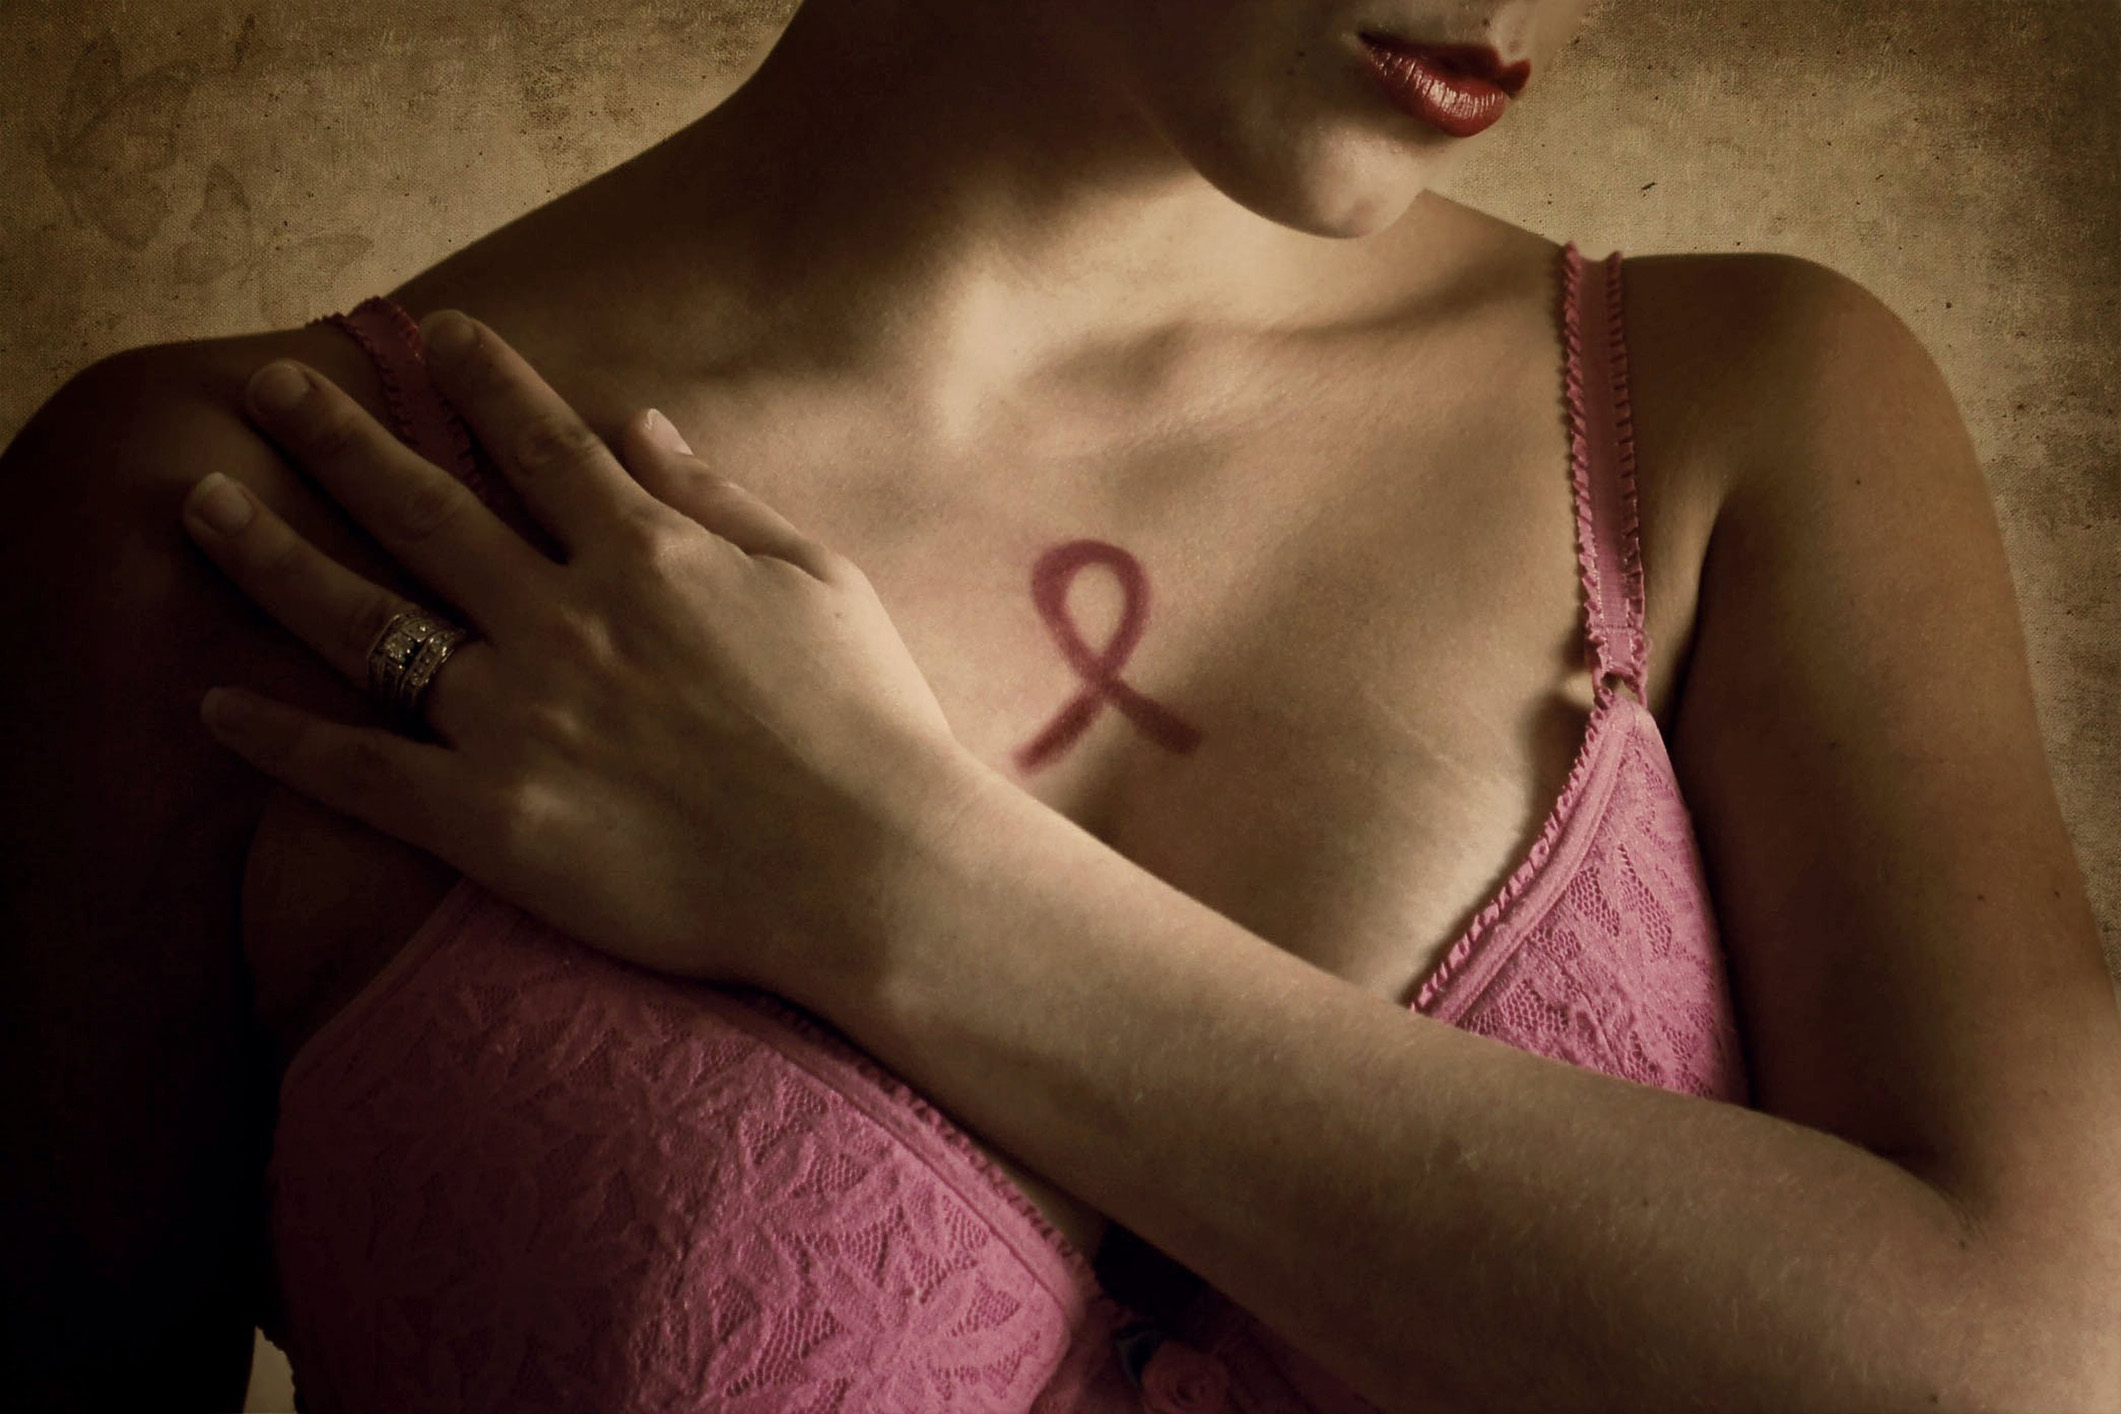 Woman in pink bra representing breast cancer awareness month. (Annette Bunch/Getty Images)